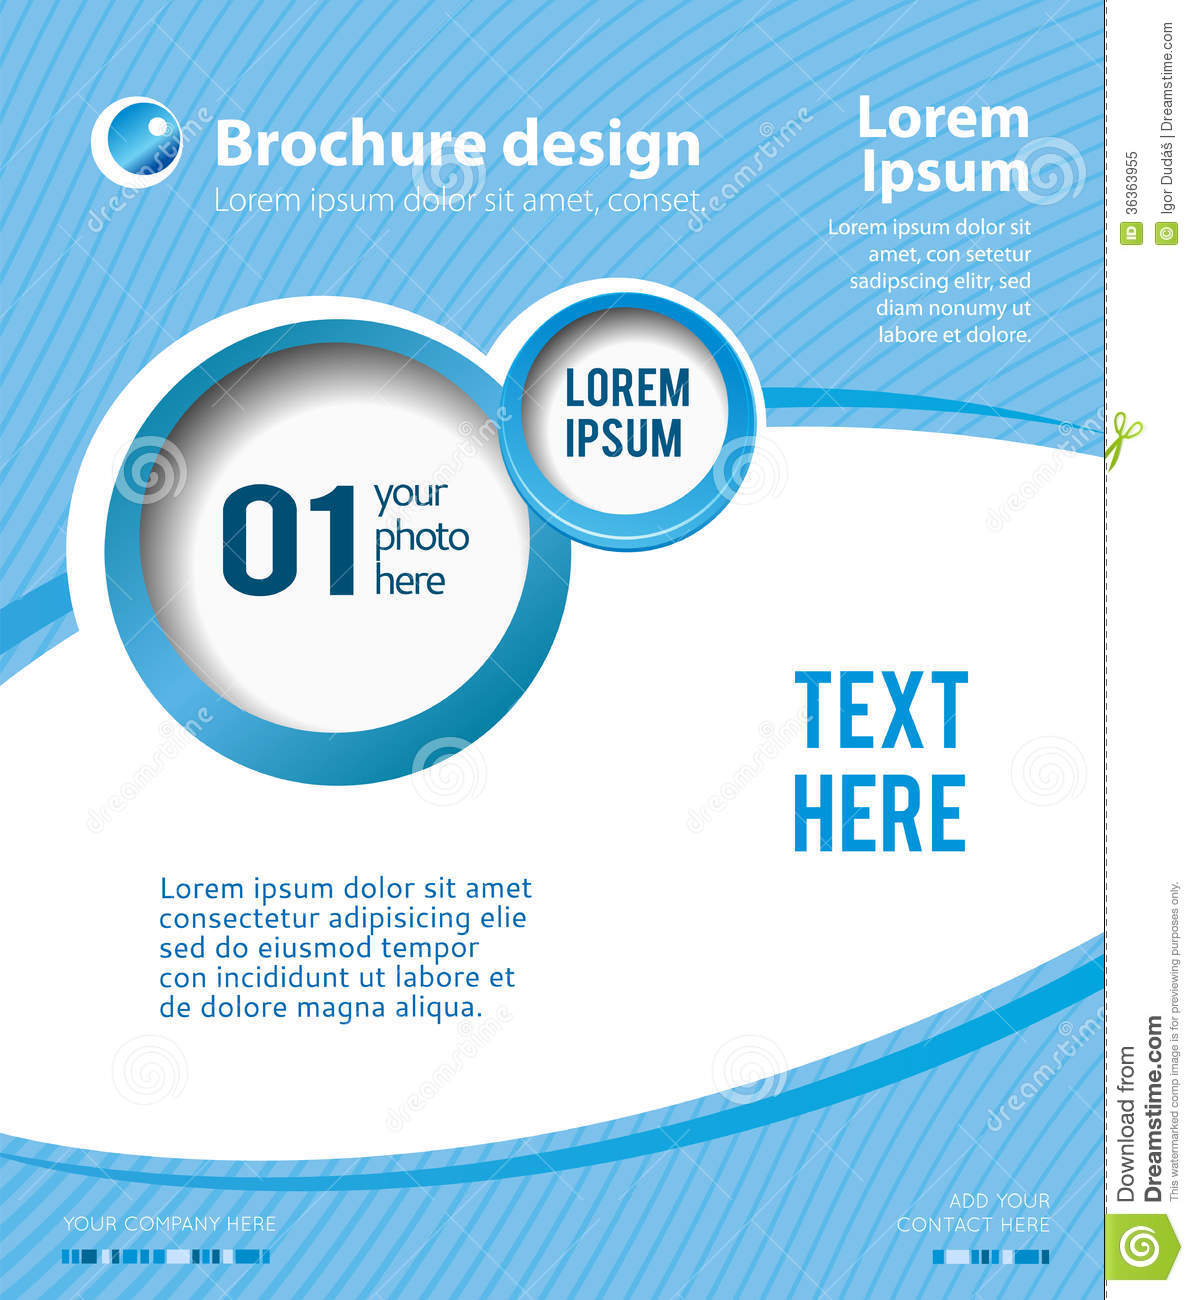 download design layout template stock illustration illustration of layout 36363955 - Free Poster Design Templates